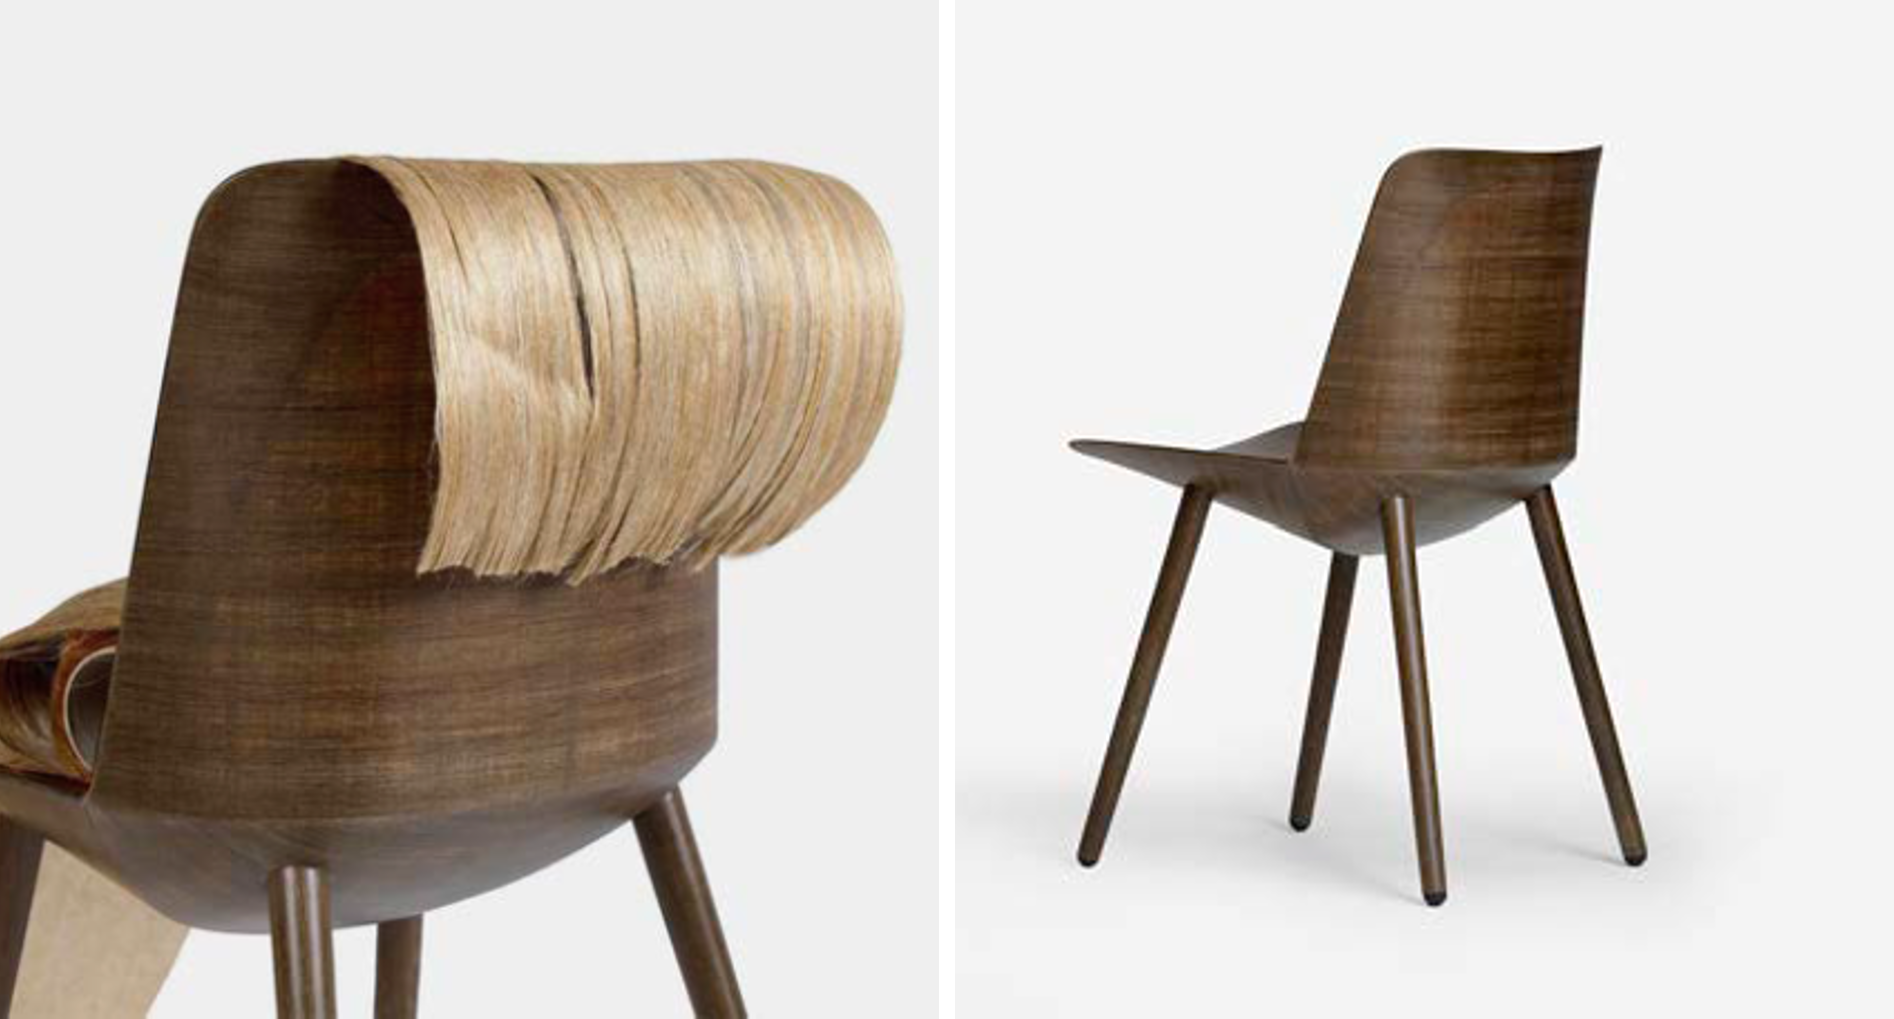 Jin chair by Offecct Lab